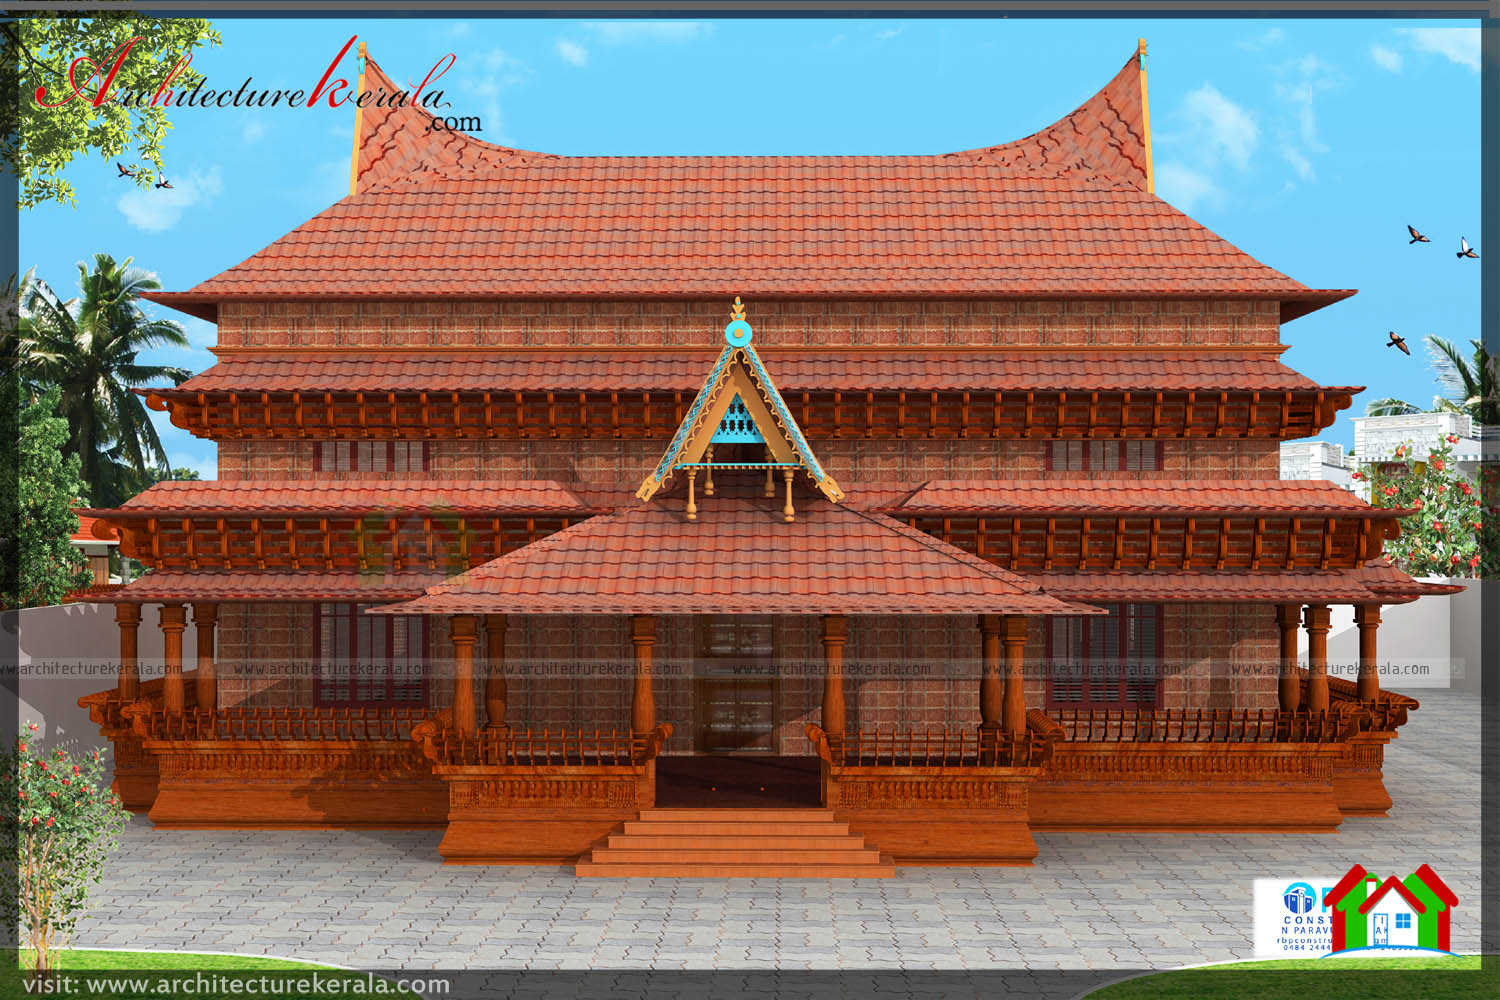 Traditional Kerala Style House Plan like 1 - 17+ Small House Plans In Kerala With Photos  Images